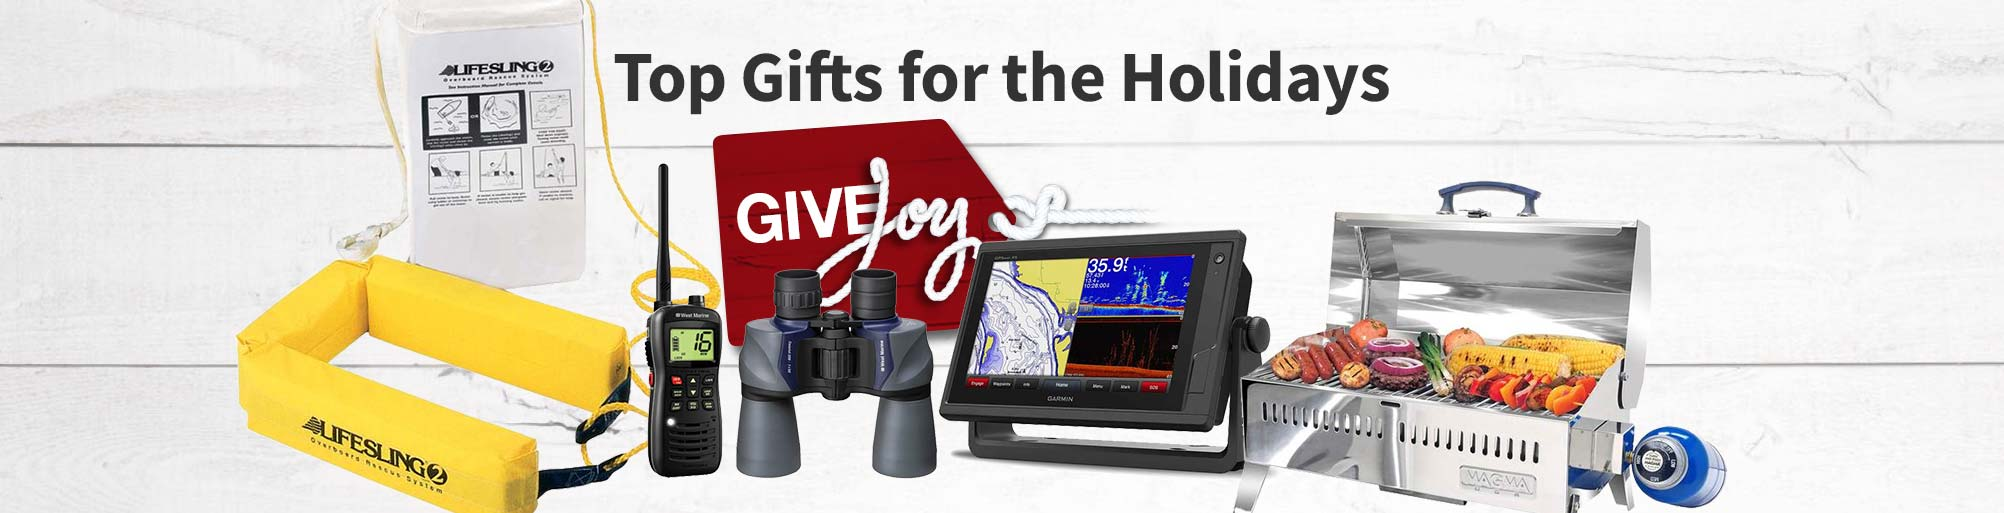 Give Joy - Top Gifts for the Holidays